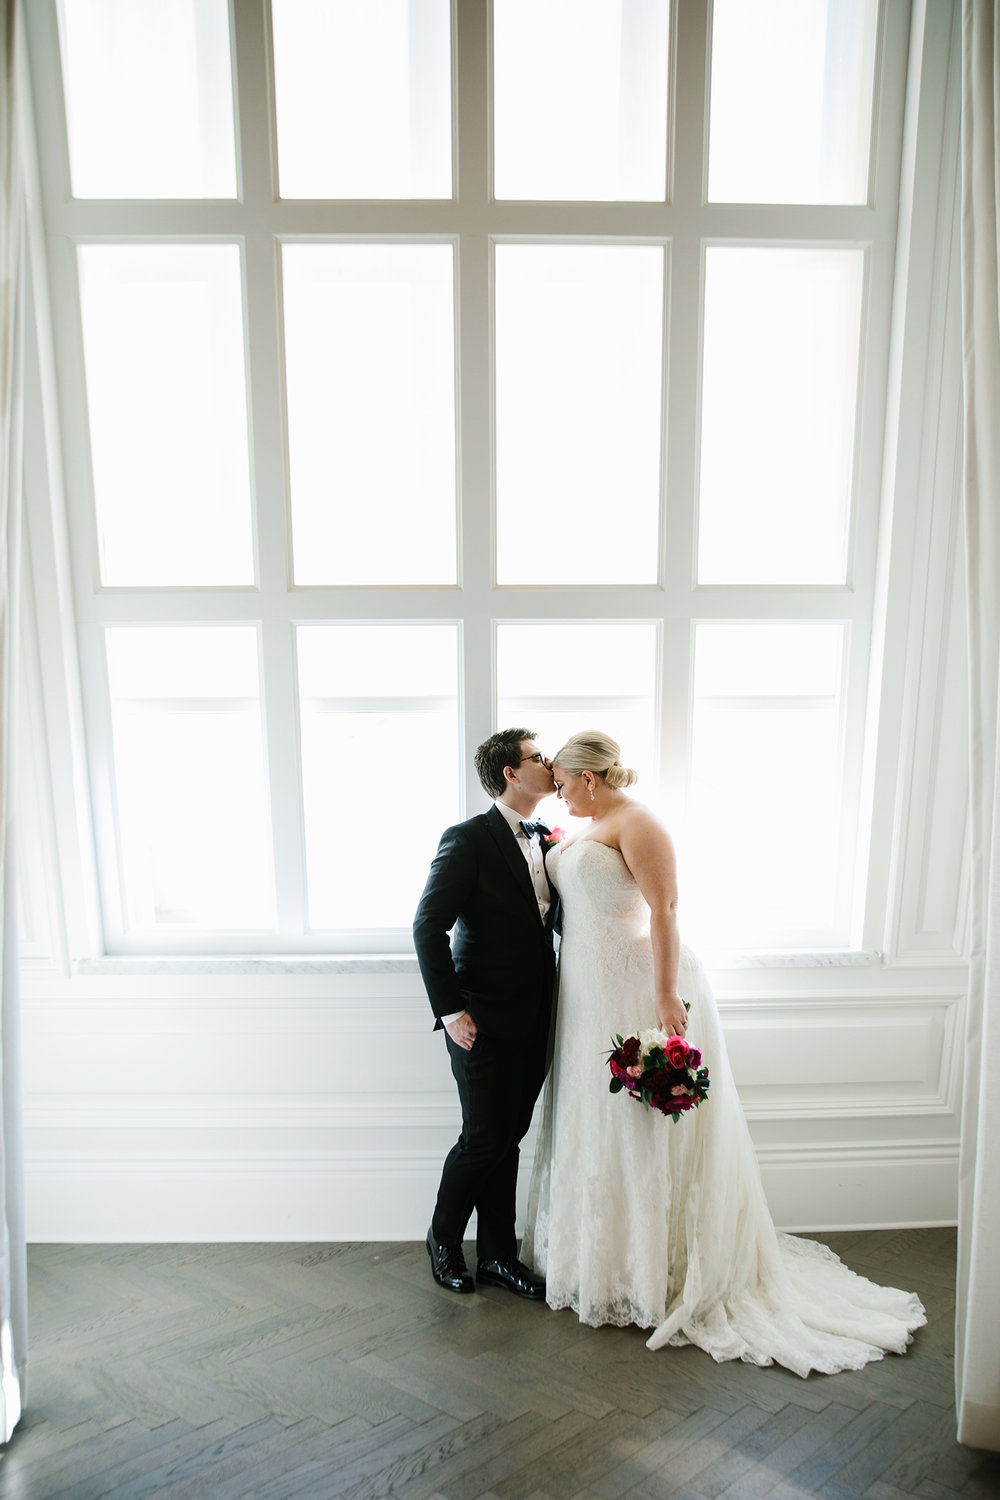 Dallas Weddings Planner - Allday Events - Katie + Matthew at The Adolphus Hotel - 175.jpg